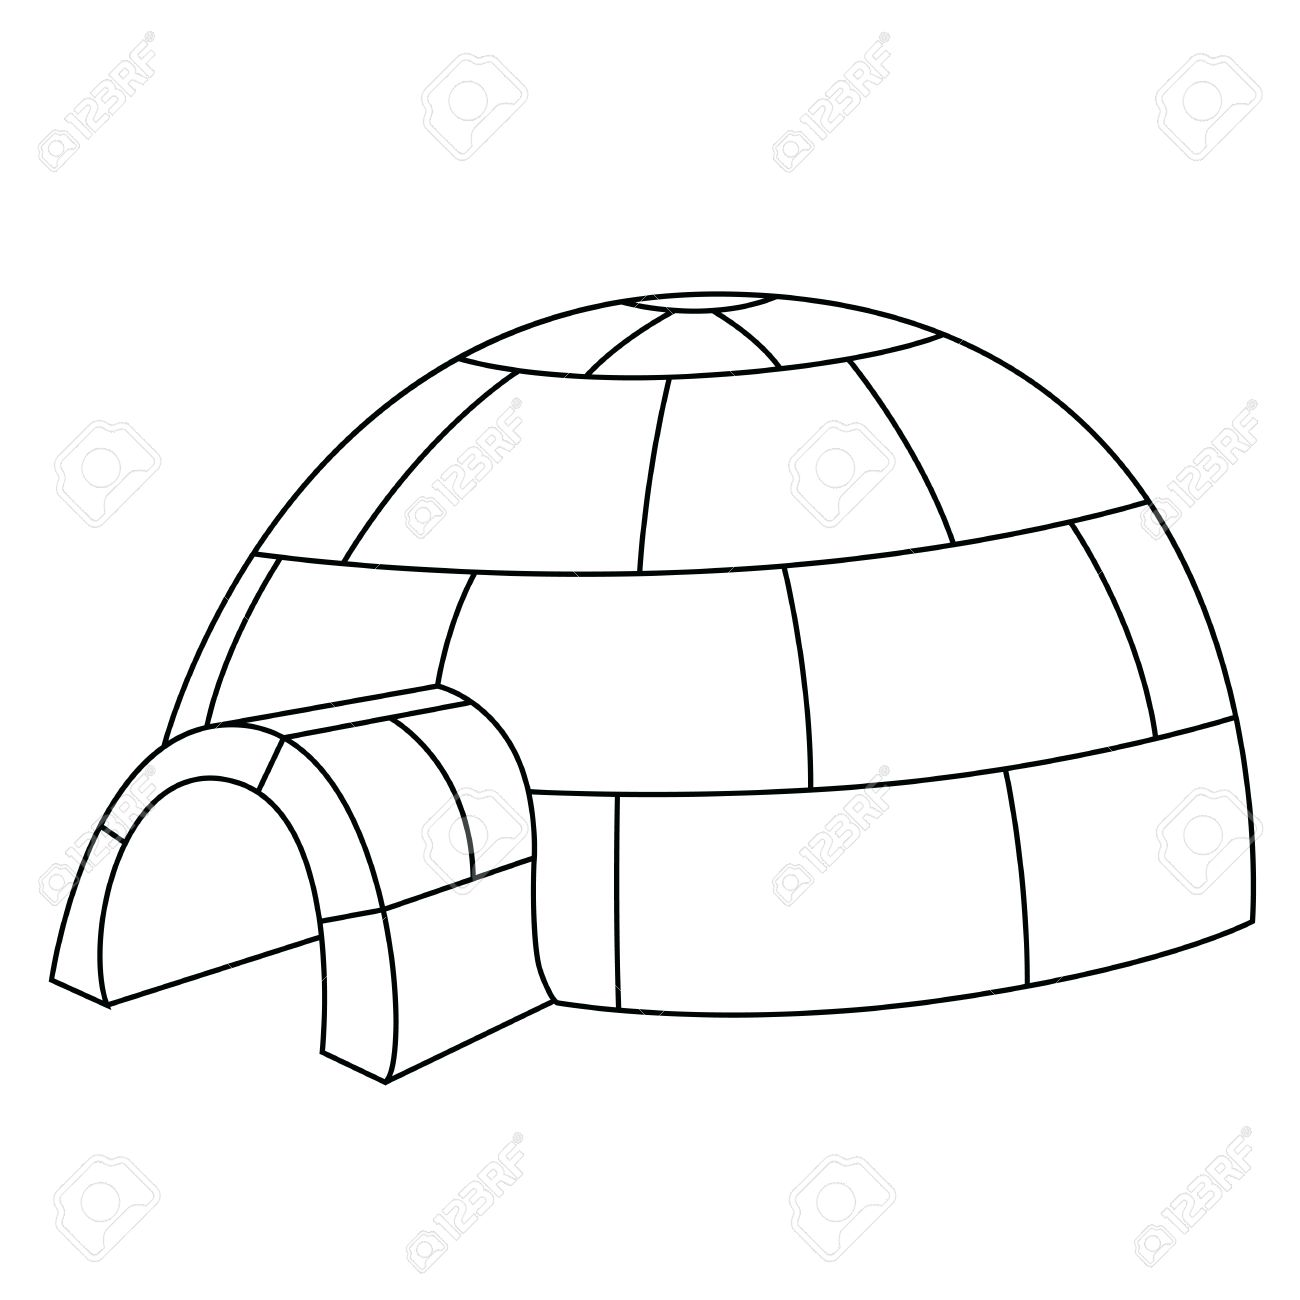 Black outline vector igloo on white background royalty free black outline vector igloo on white background stock vector 25307095 pooptronica